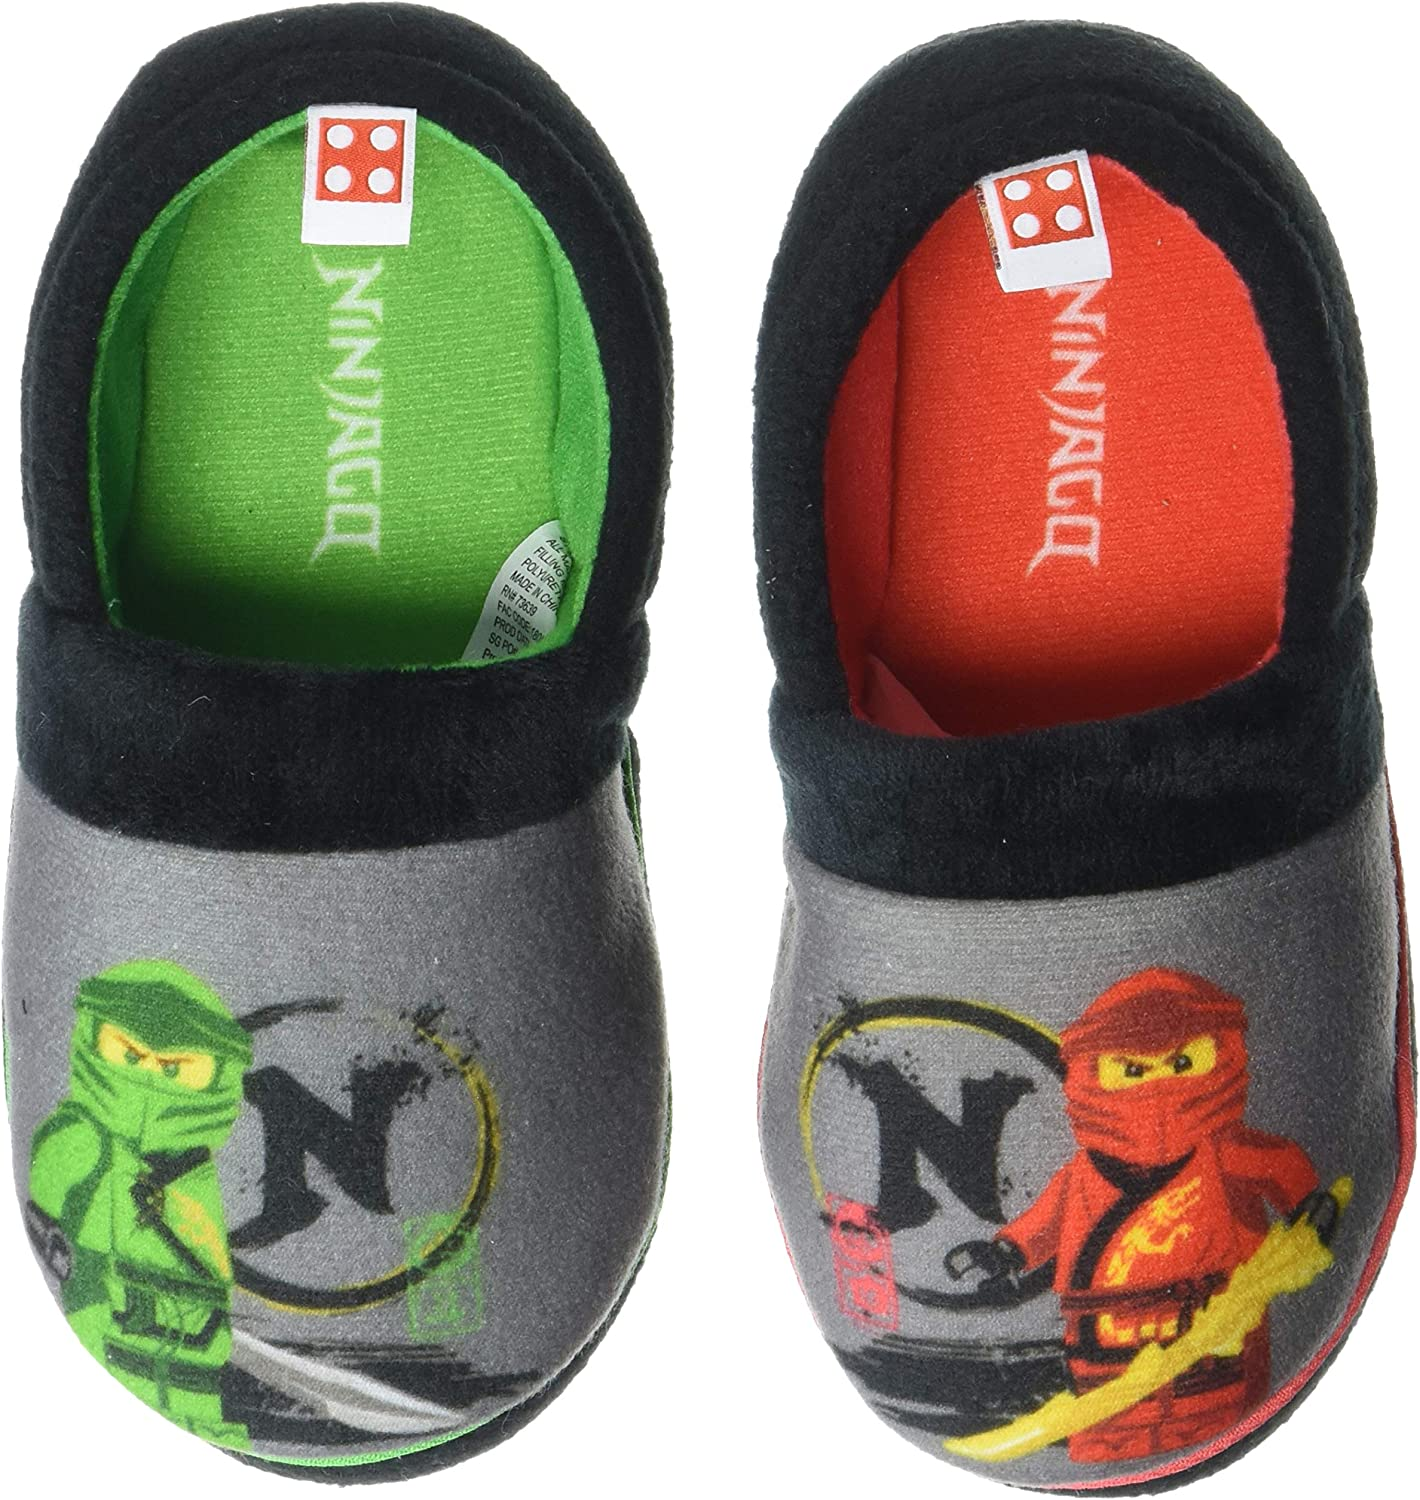 Easy Slip On Slippers for Kids Little Kid Size 9//10 to Big Kid Size 2//3 LEGO Ninjago Slippers with Kai and Lloyd